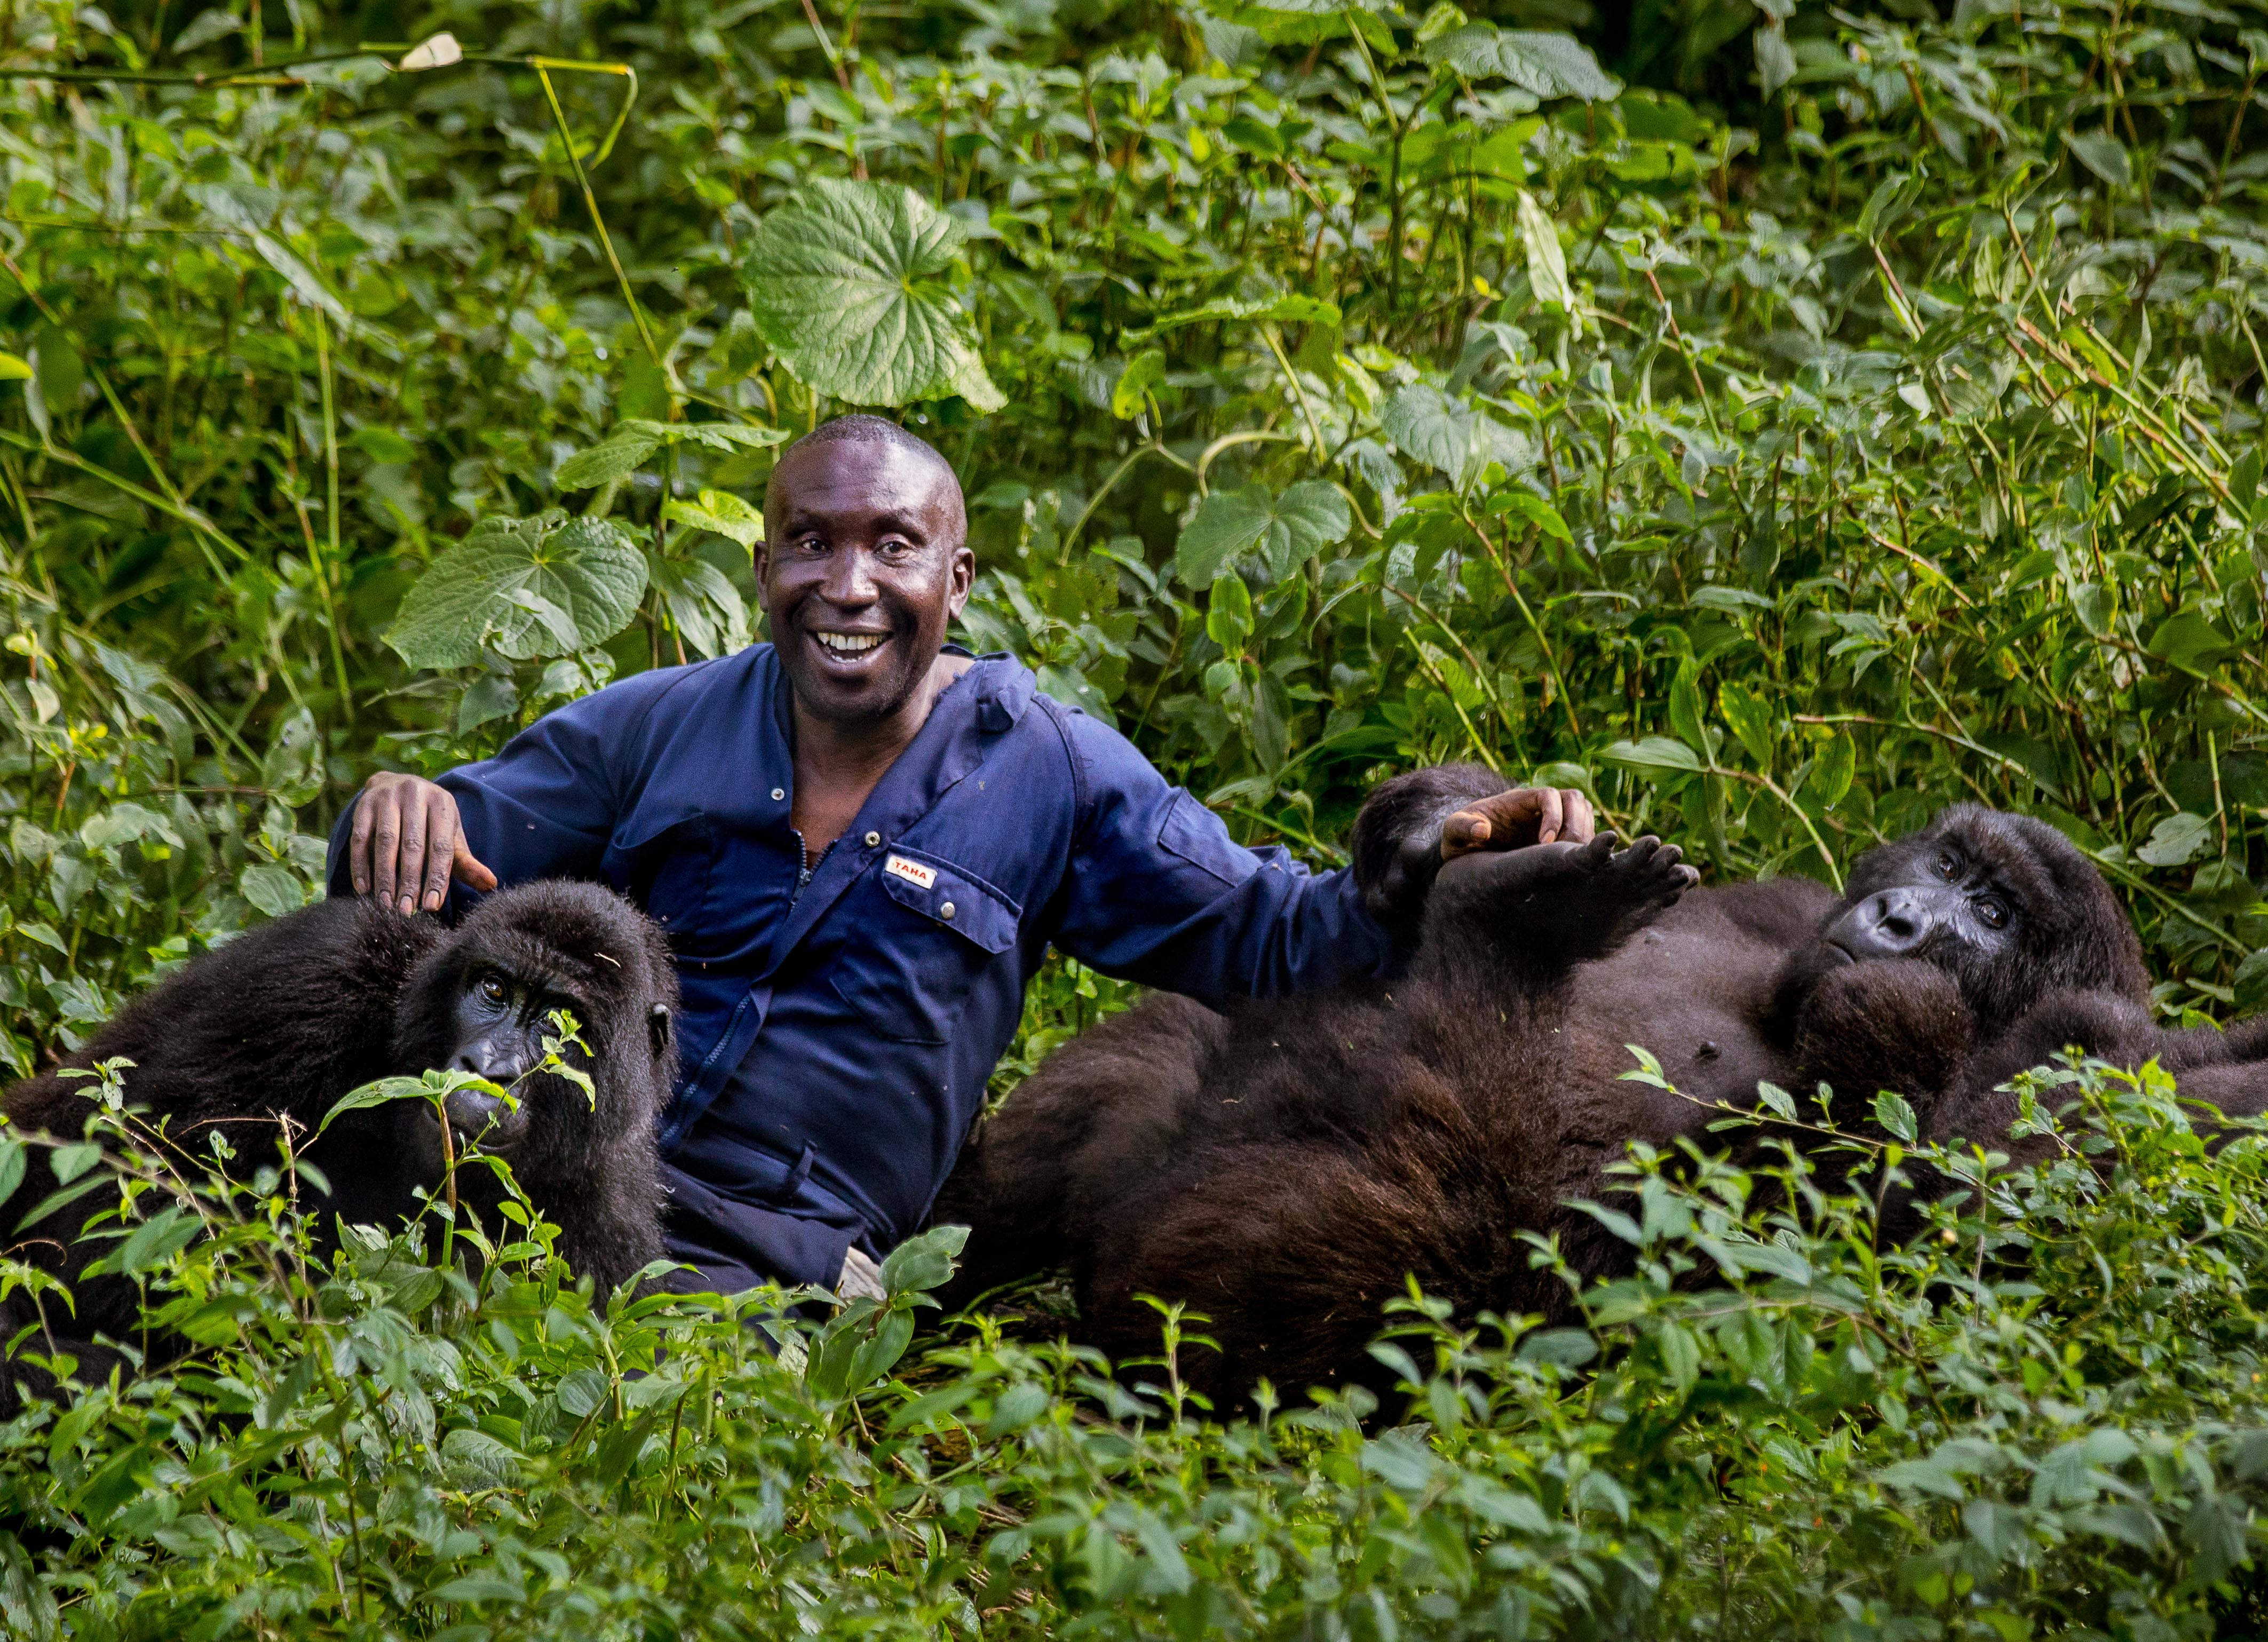 MERCURY PRESS 08/06/18(PICTURED: Ndazi the gorilla shares a moment with her keeper Andre, in the Virunga National Park in the Democratic Republic of the Congo)This gorilla has certainly found a KEEPER as she shares a touching hug with a park ranger working to protect her.Intimate photos show young gorilla Ndazi giving one of her keepers Andre a big hug before jumping on him for a piggyback.Smiling Andre seems more than happy to help her on her way through the jungle.The touching scene was captured on camera by Shannon Witz, from Chicago, USA, when she was visiting the Virunga National Park in the Democratic Republic of the Congo.See Mercury copy